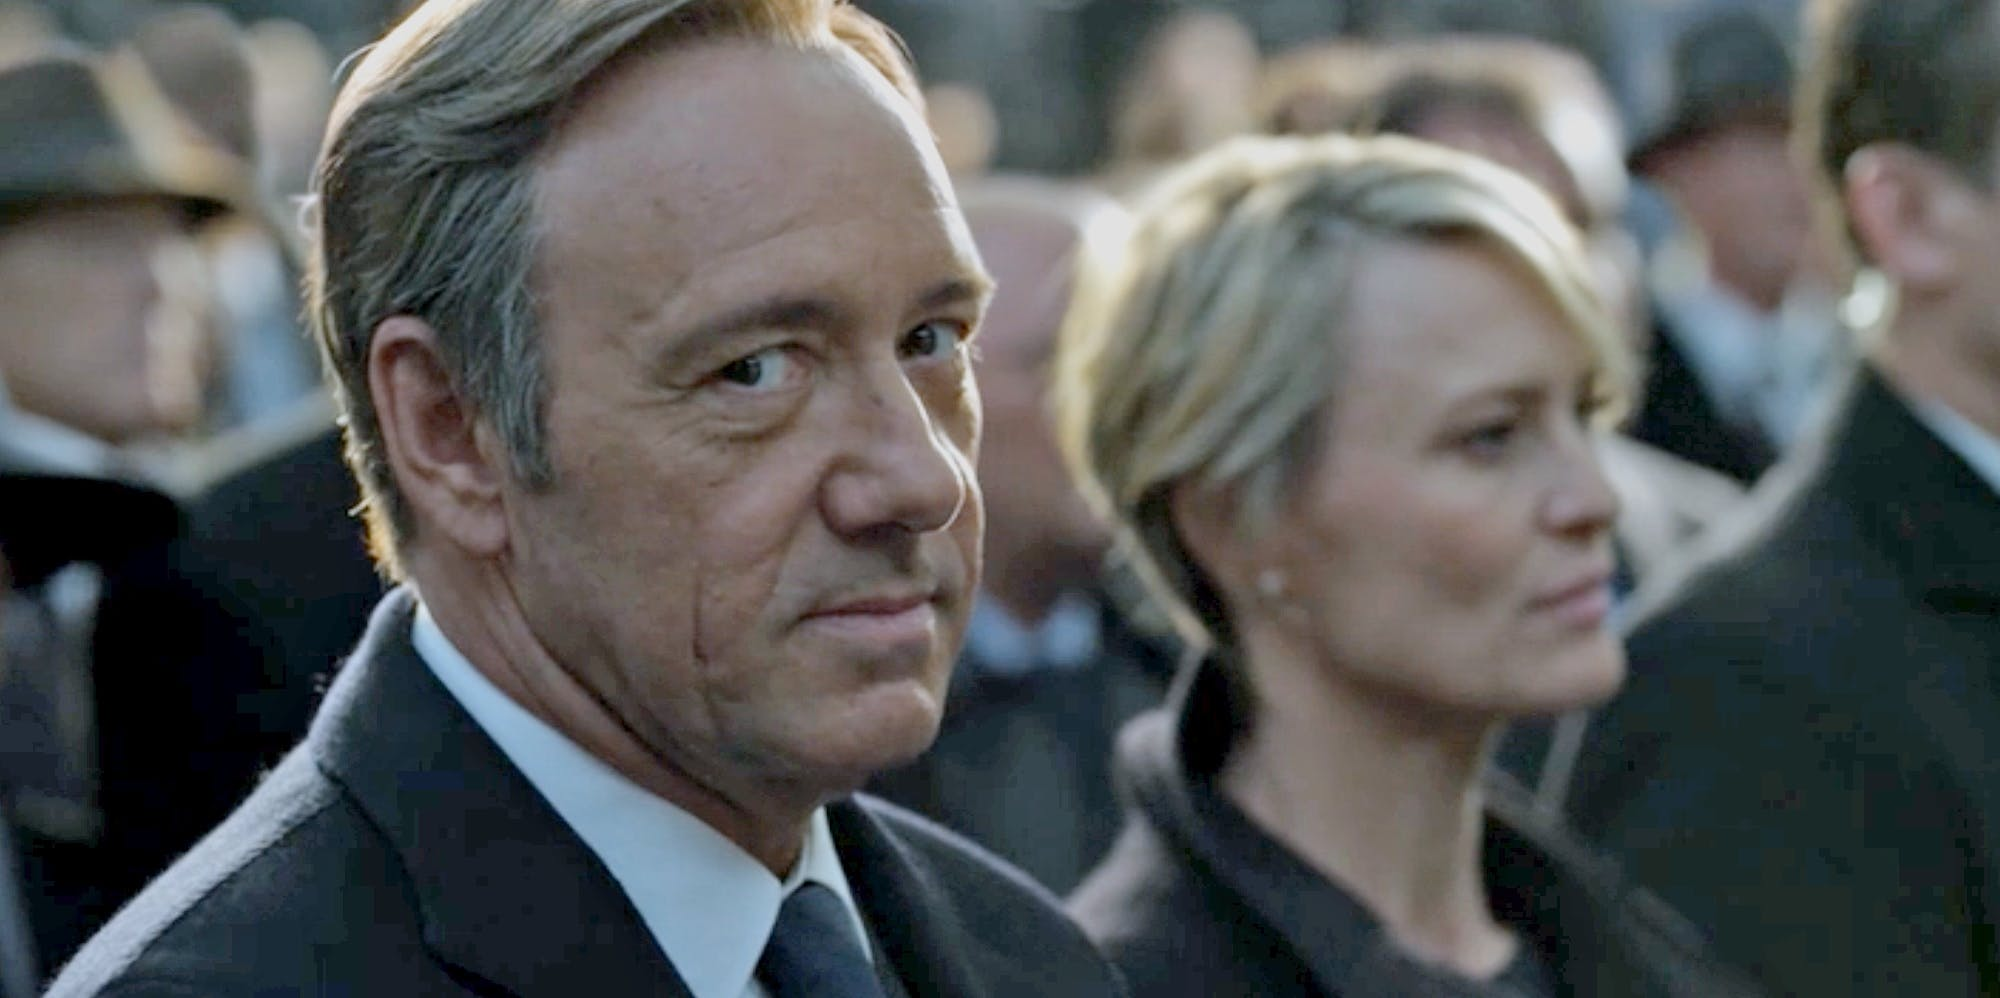 kevin-spacey-house-cards-camera-look